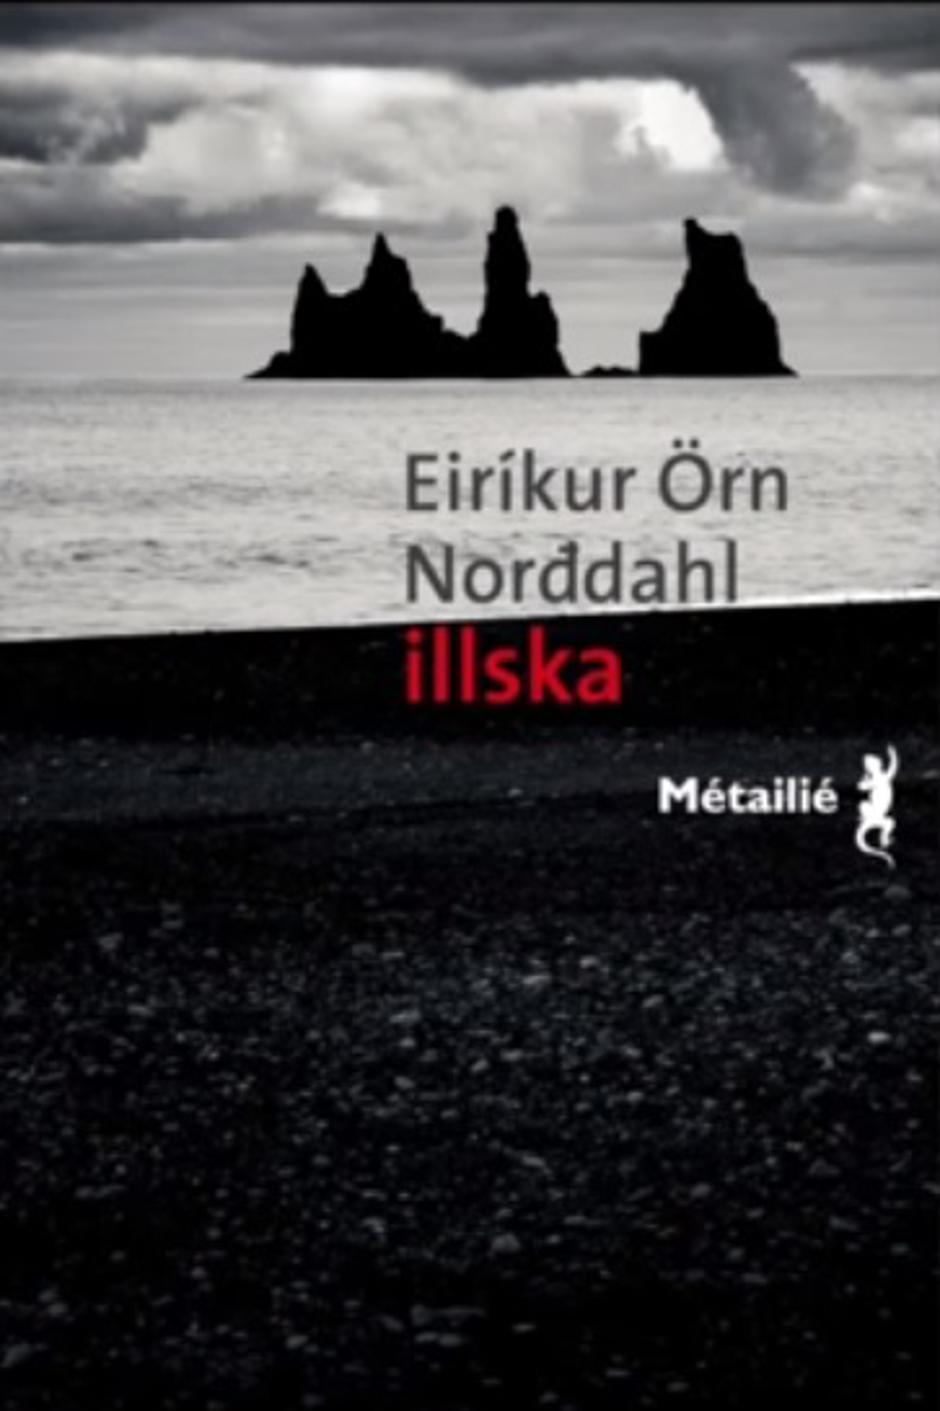 Eirikur Orn Norddahl | Author: YouTube